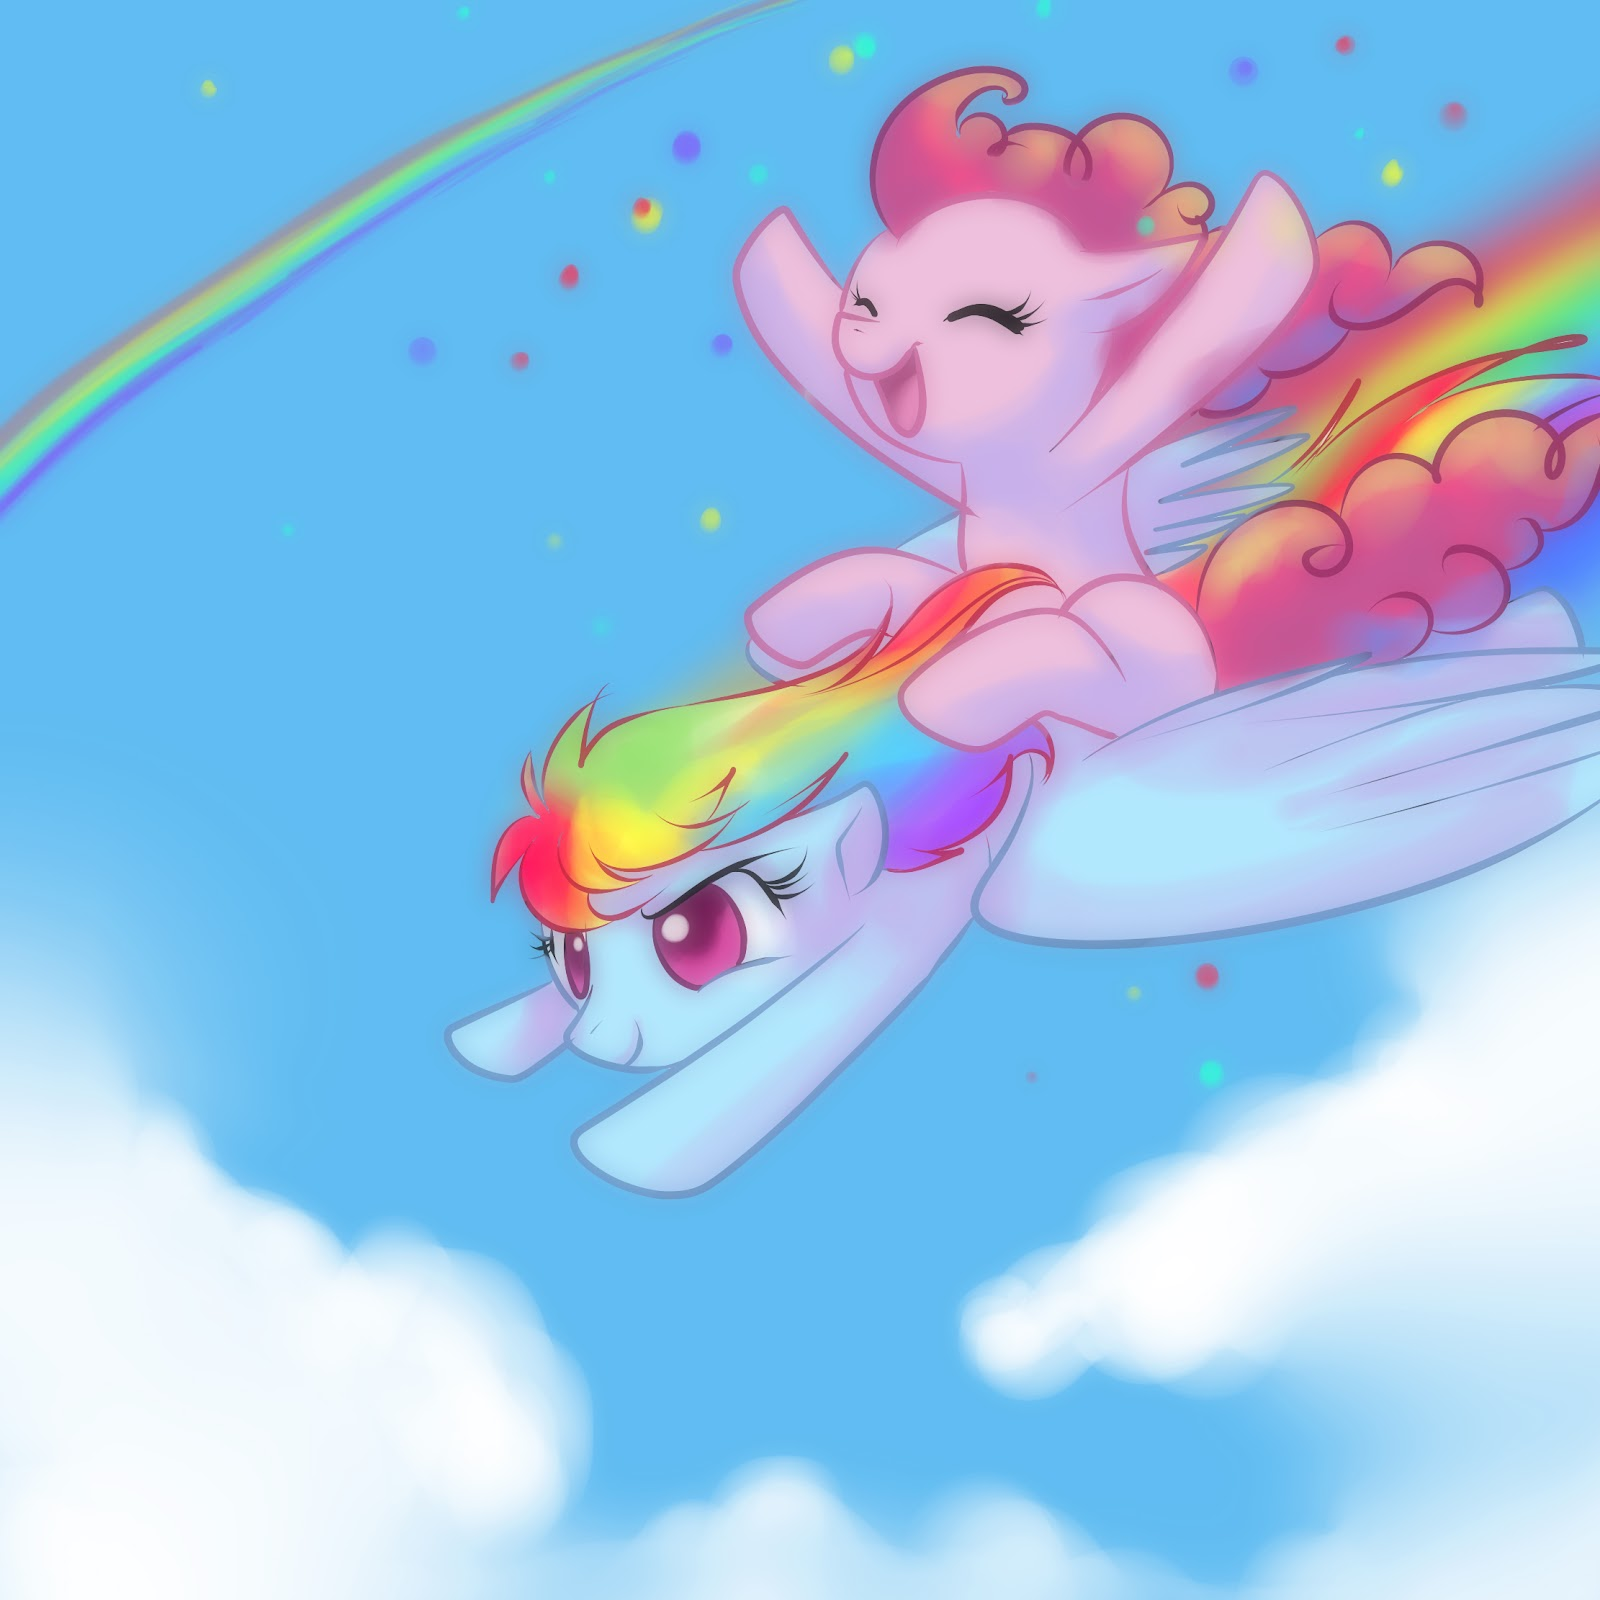 Flying-Through-The-Sky-my-little-pony-friendship-is-magic-31915475-1600-1600.jpg